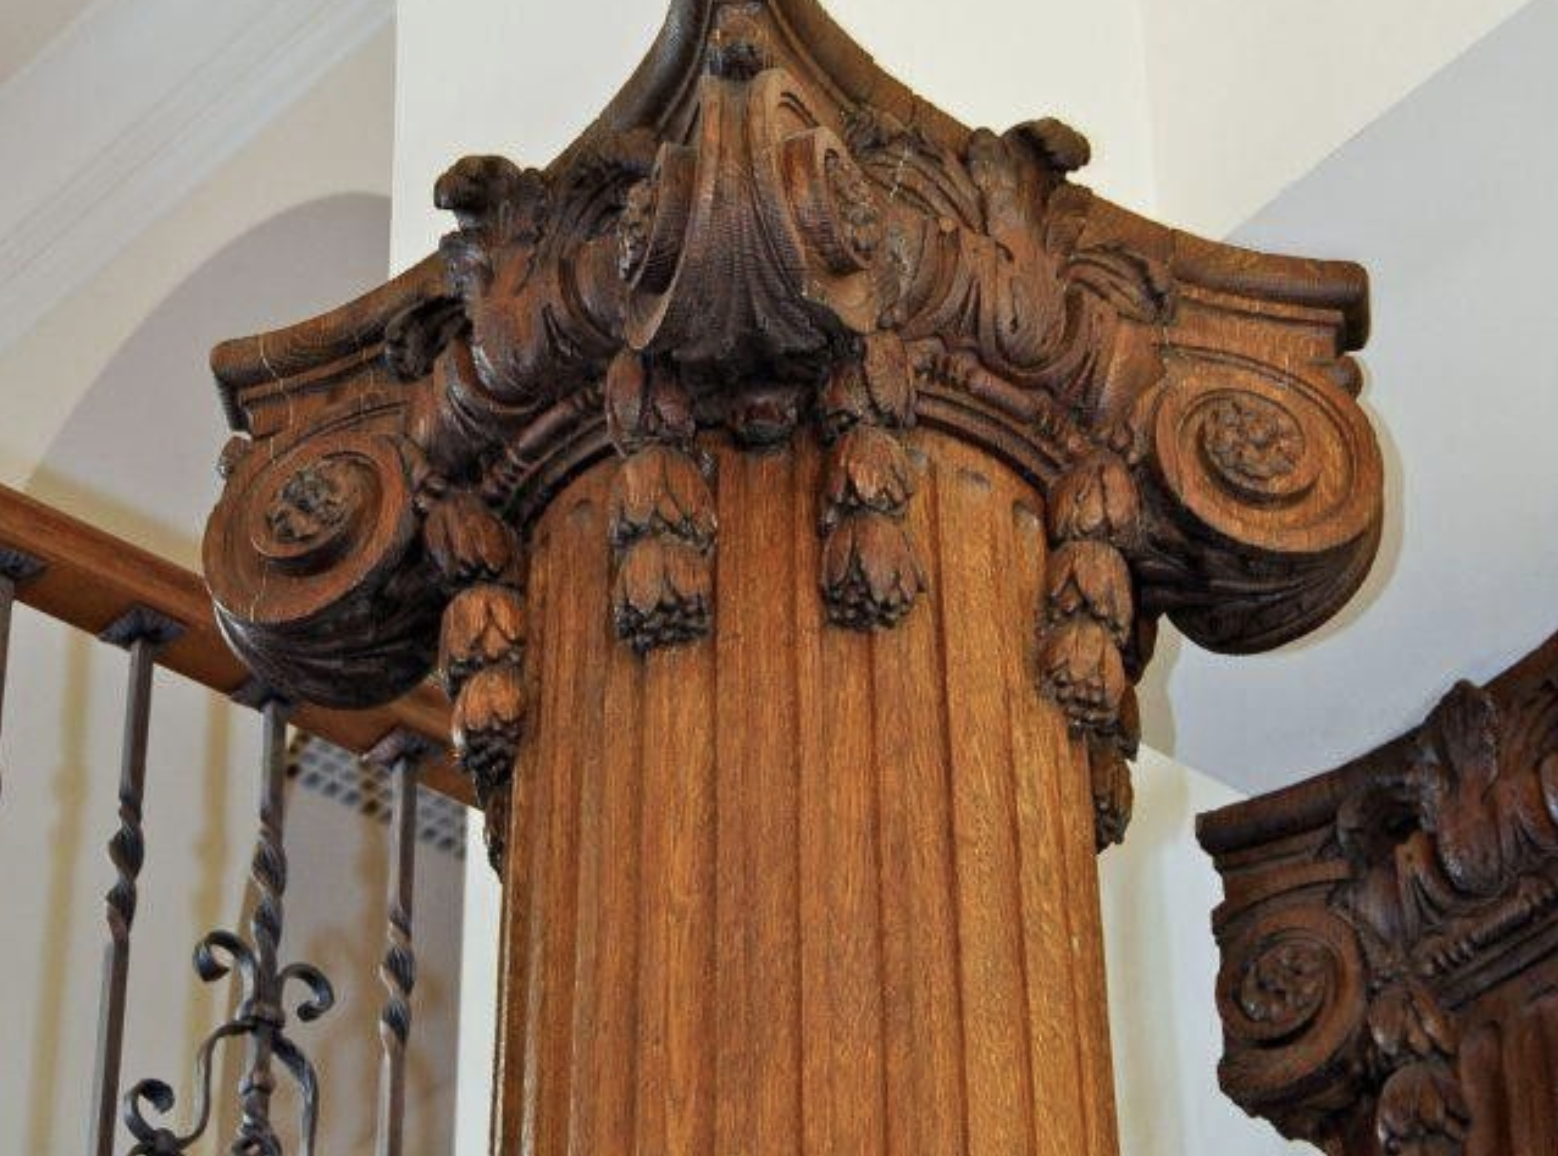 hand-carved capitals